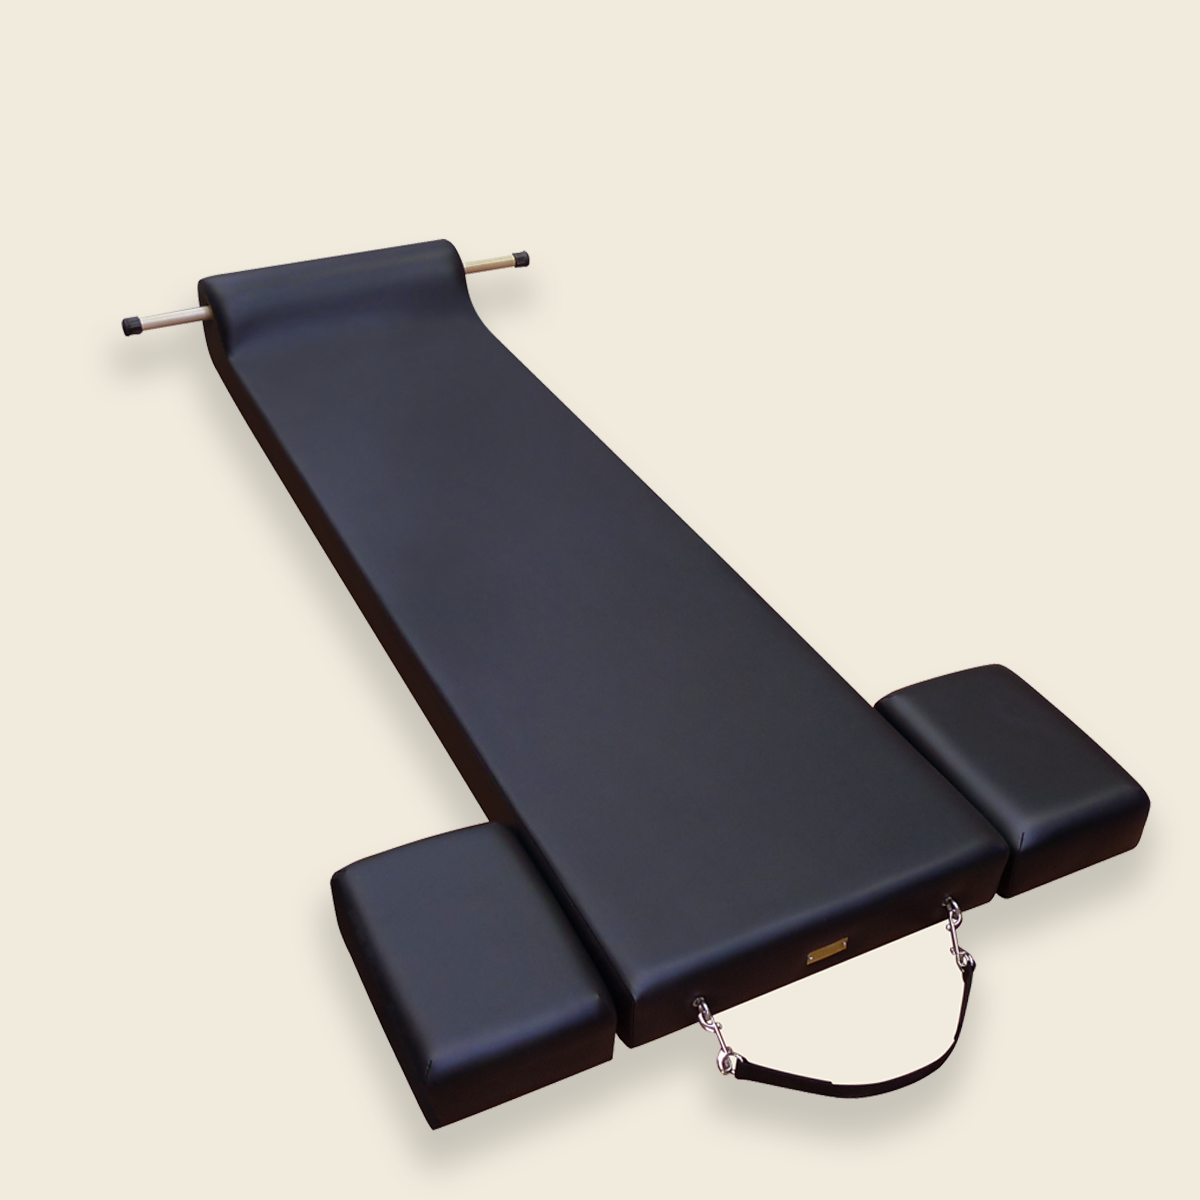 CONTOUR MAT WITH HIGH MAT HANDLES